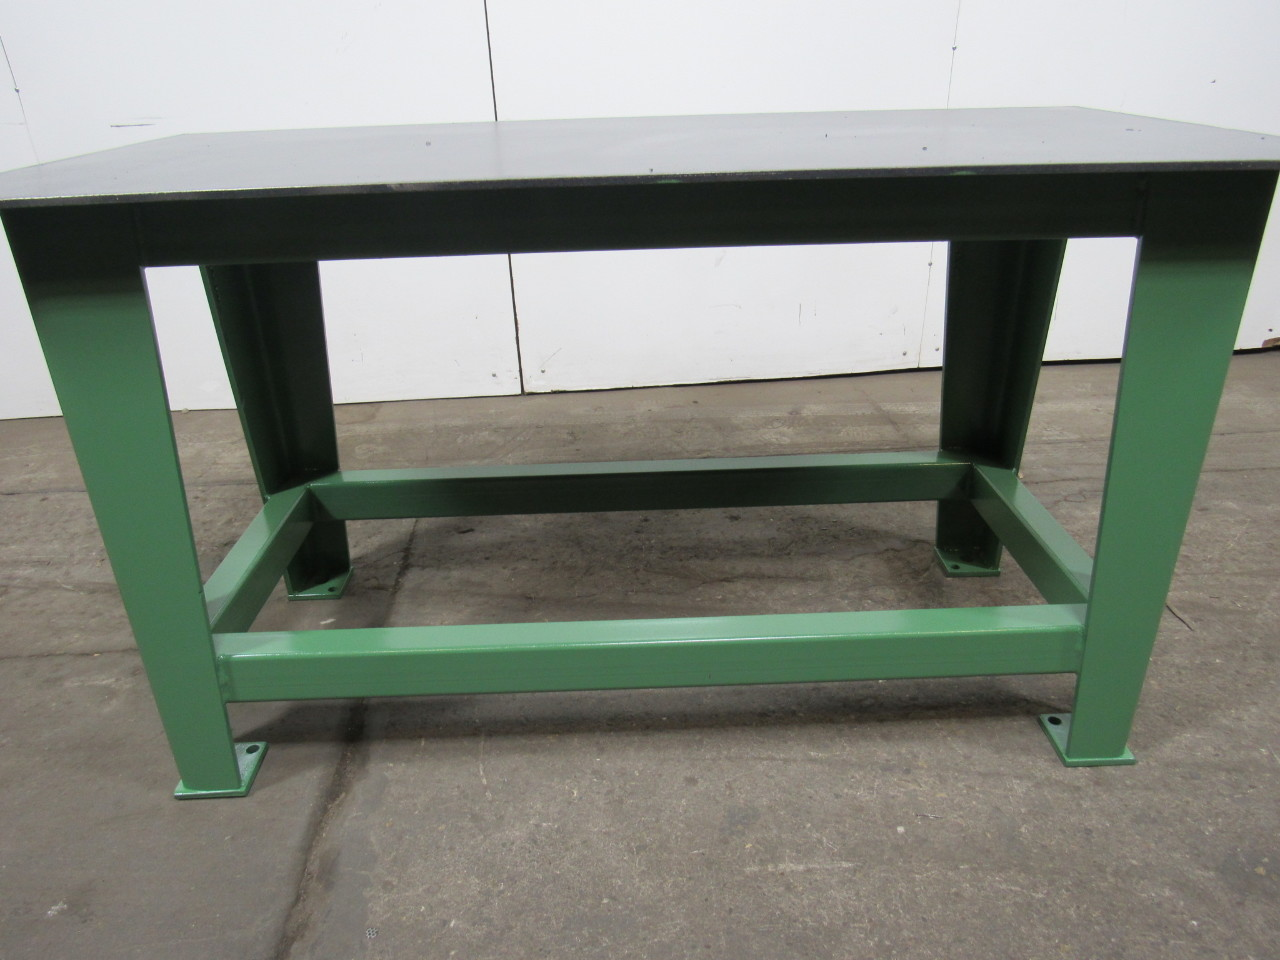 Steel Welding Work Bench Assembly Layout Table 60 X 30 3 8 Thick Top Ebay